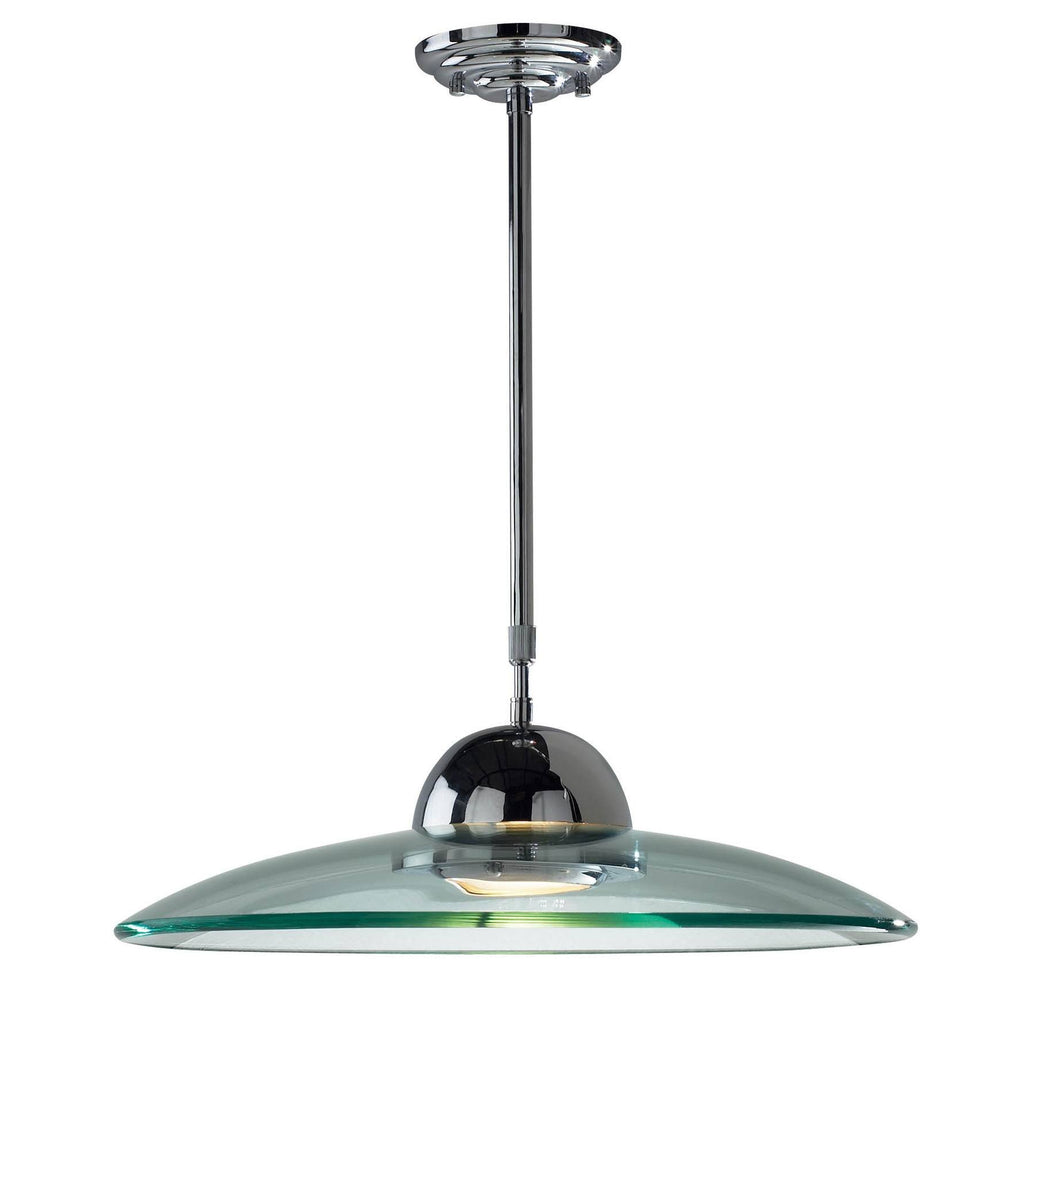 Hemisphere Chrome Lamp Ceiling Light - London Lighting - 1